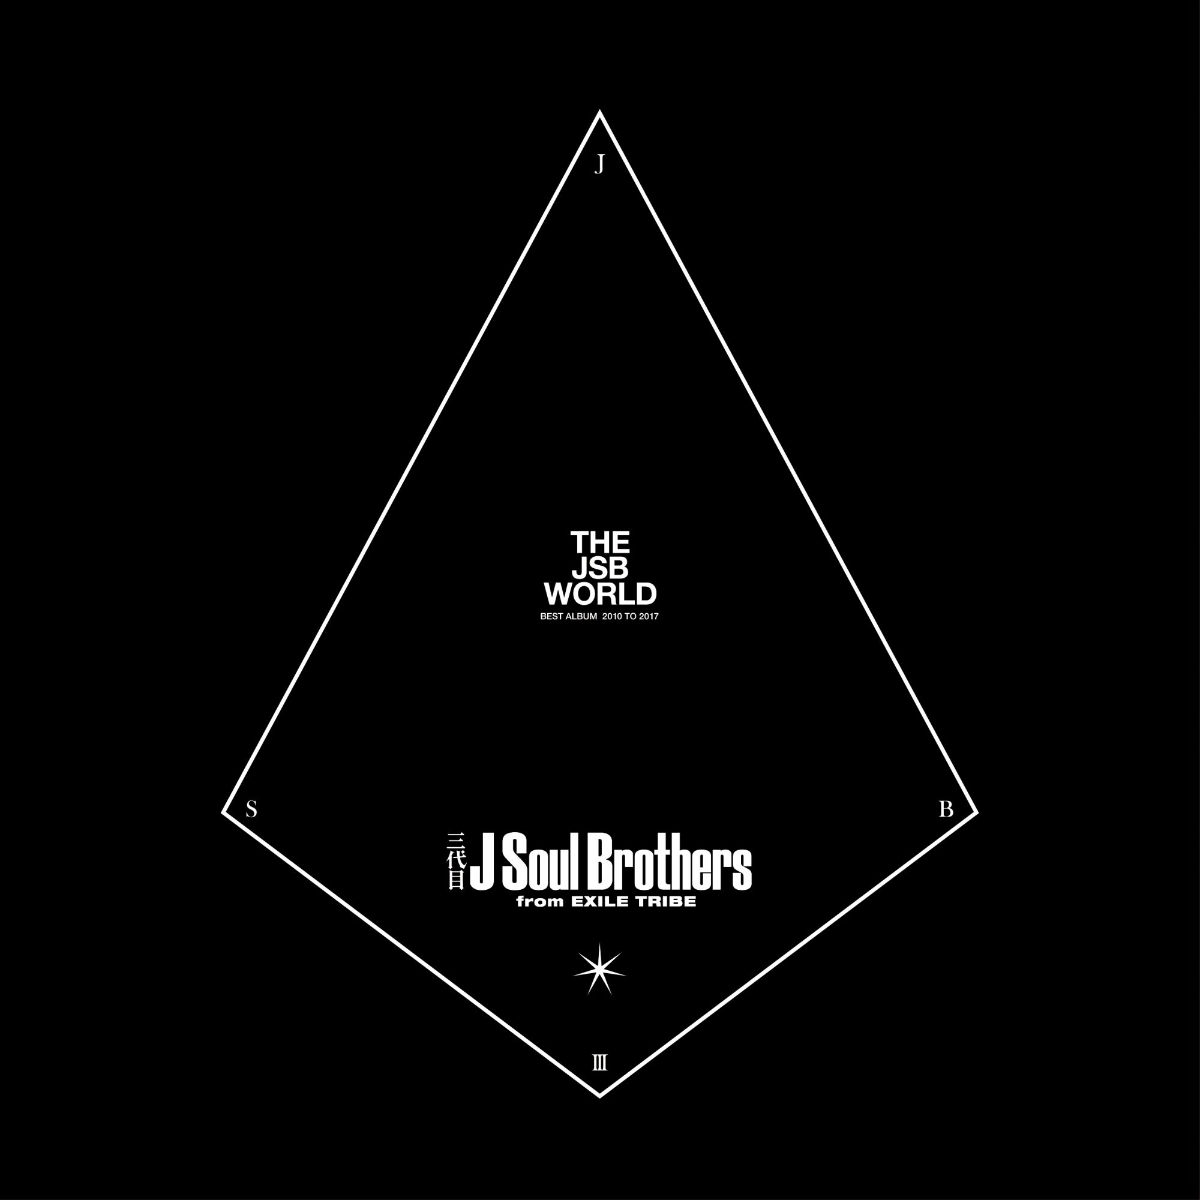 THEJSBWORLD(3CD)[三代目JSoulBrothersfromEXILETRIBE]